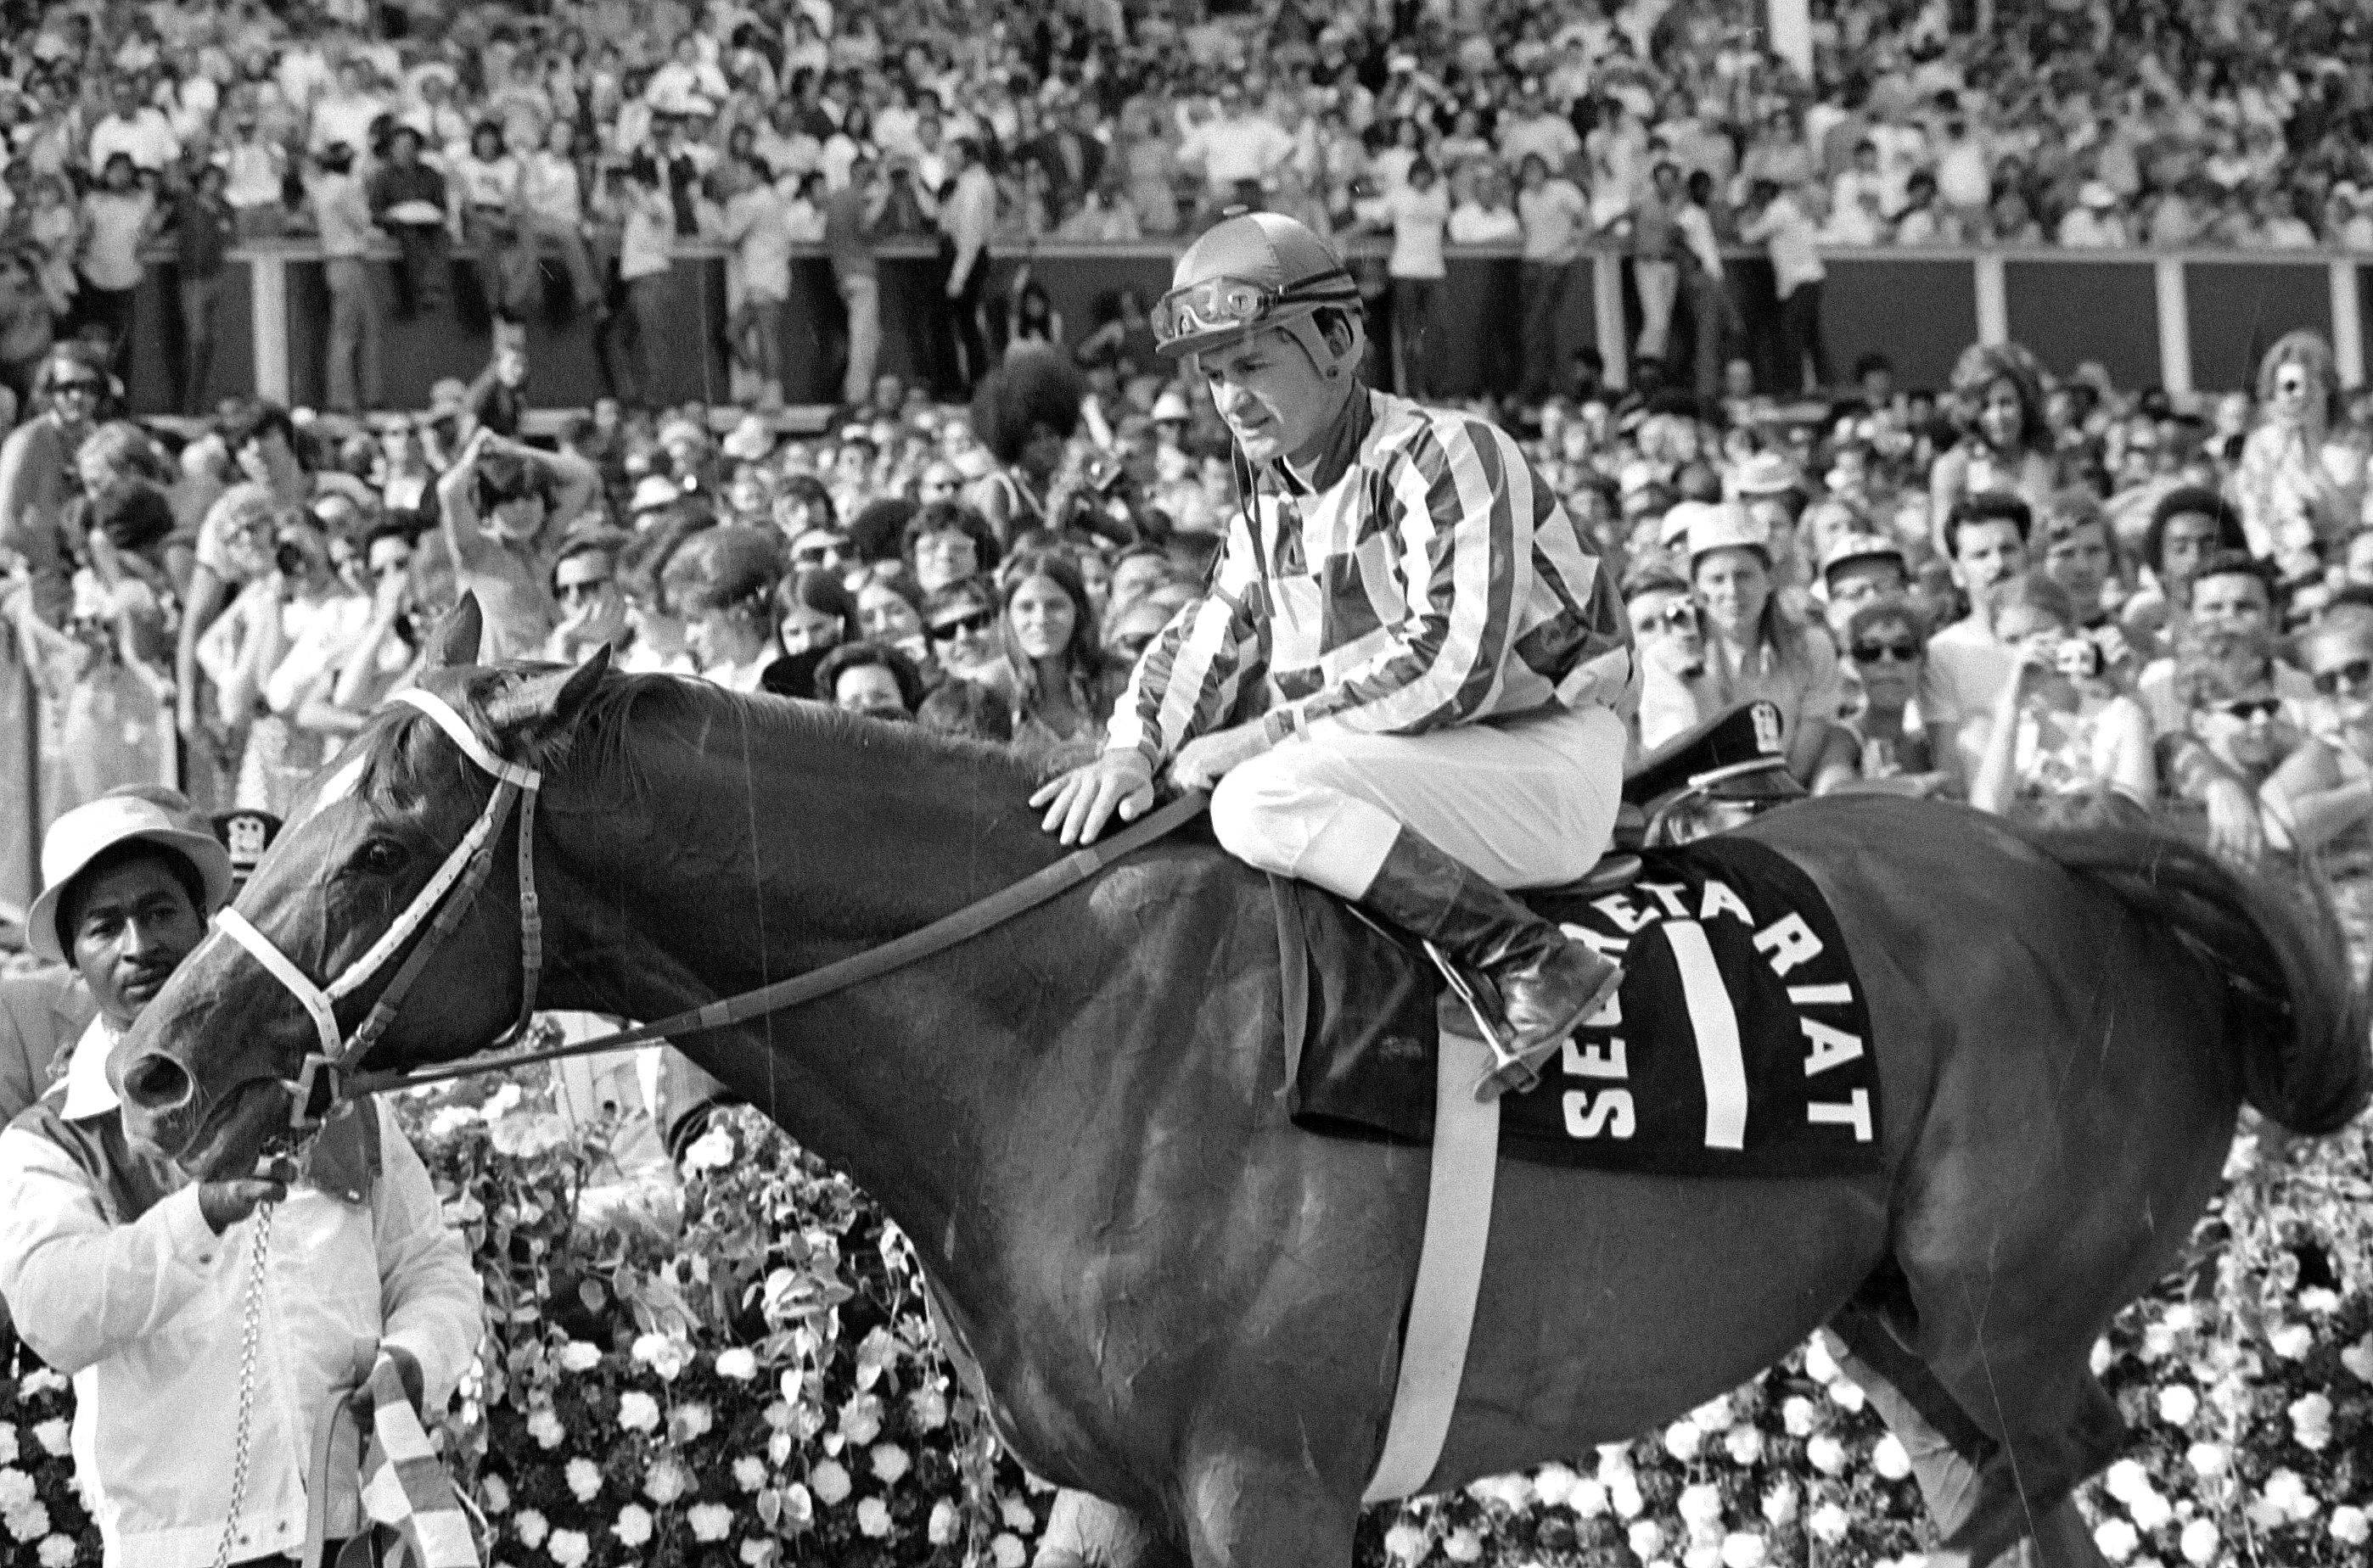 In 1973, more than 41,000 fans turned out to watch Secretariat win a four-horse race at Arlington Park just three weeks after capturing the nation's attention for winning the Triple Crown.